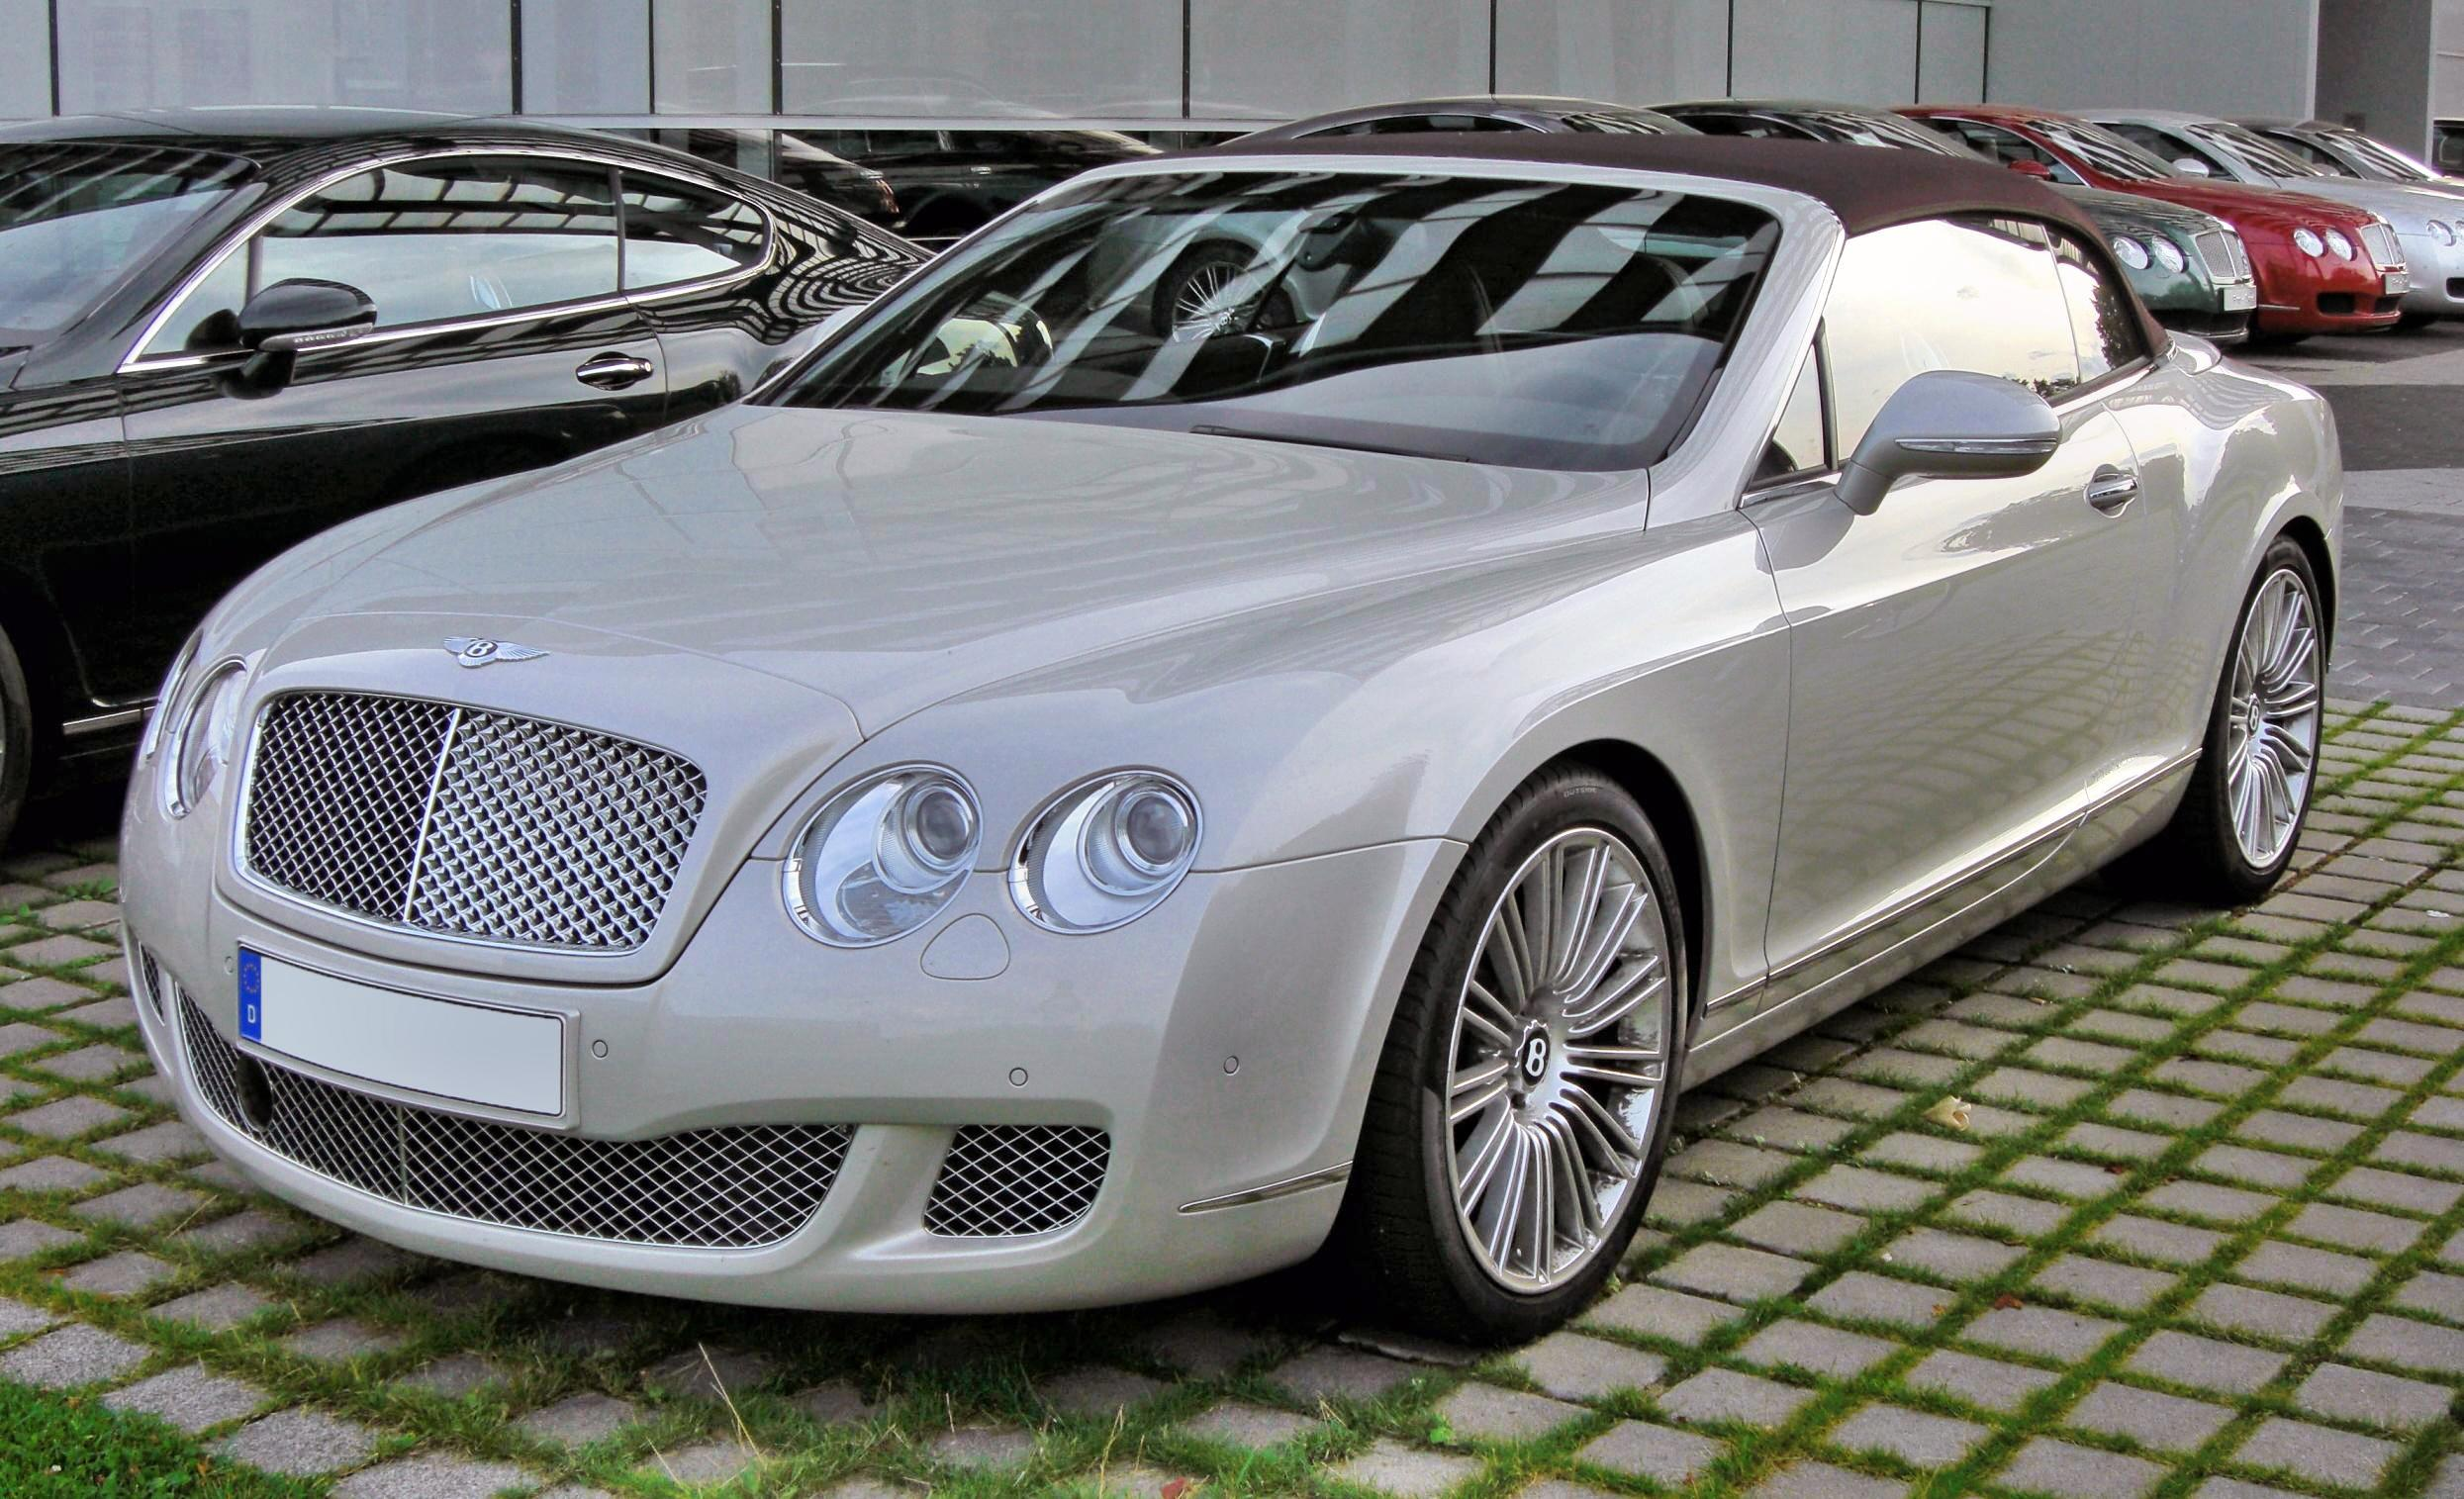 beach sale gt exotics newport bentley speed car for cars near classic continental